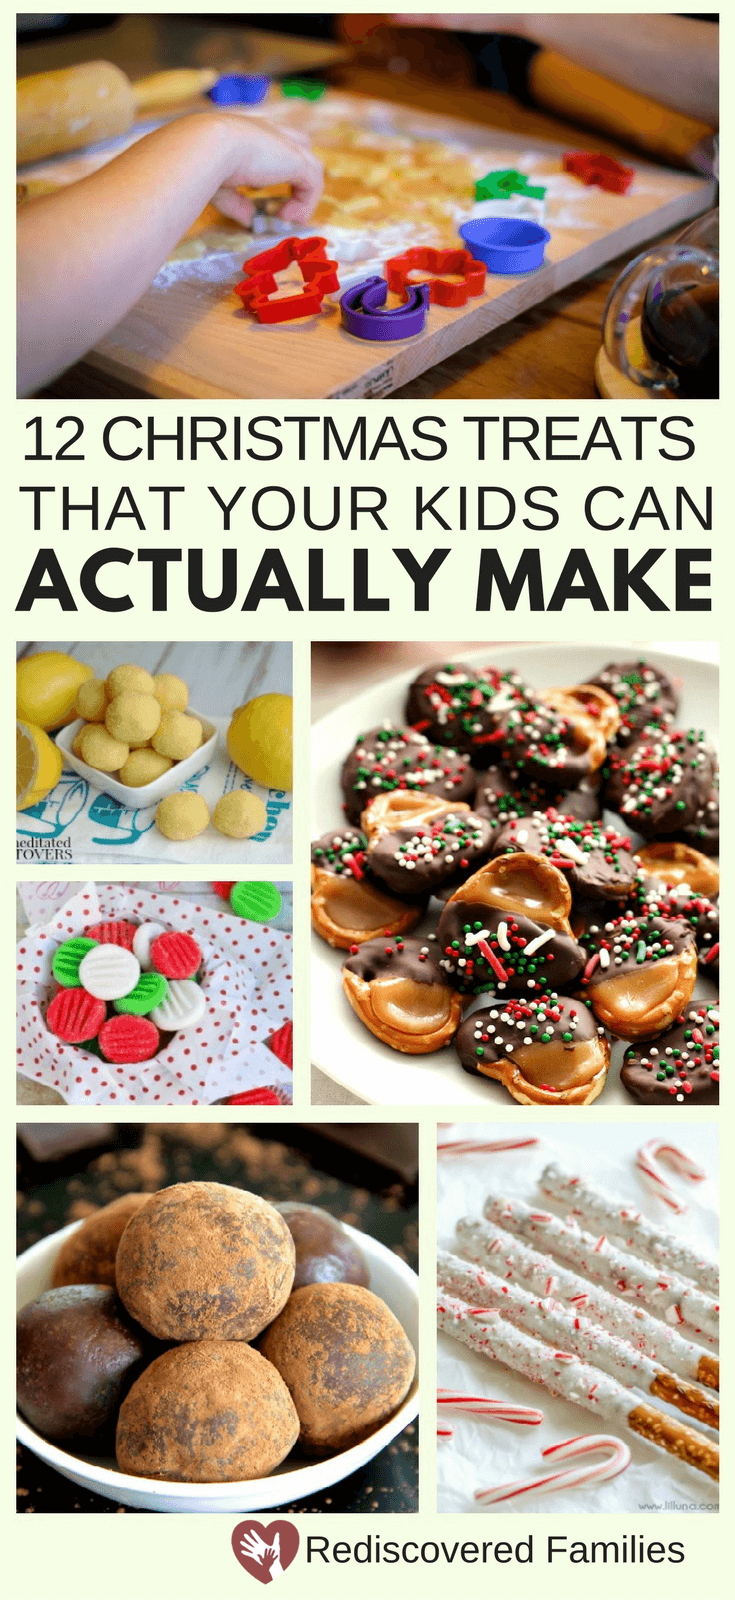 12 Easy Christmas Treats Your Kids Can Actually Make